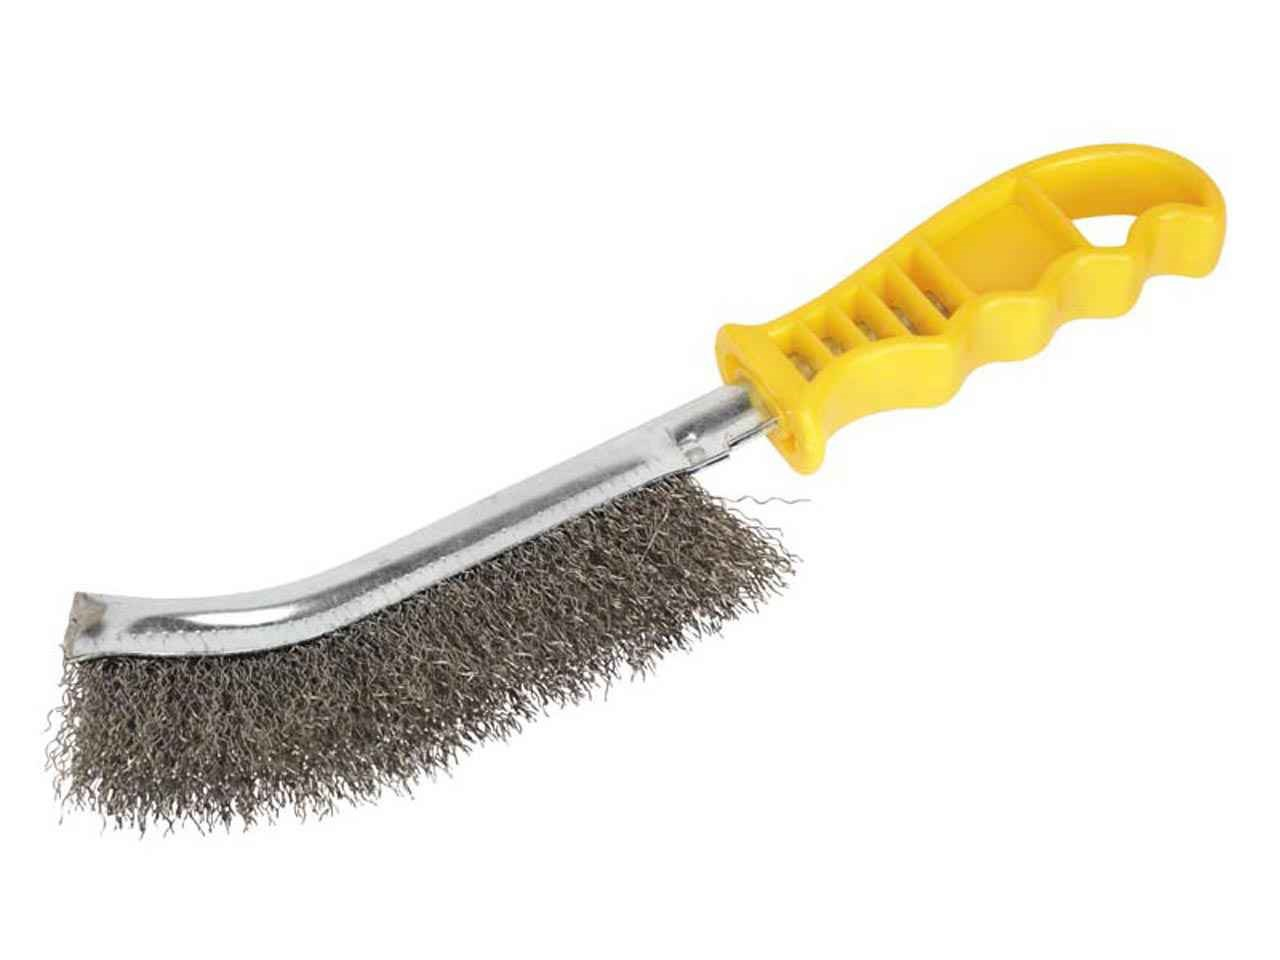 Sealey Wb05y Wire Brush Stainless Steel Plastic Handle